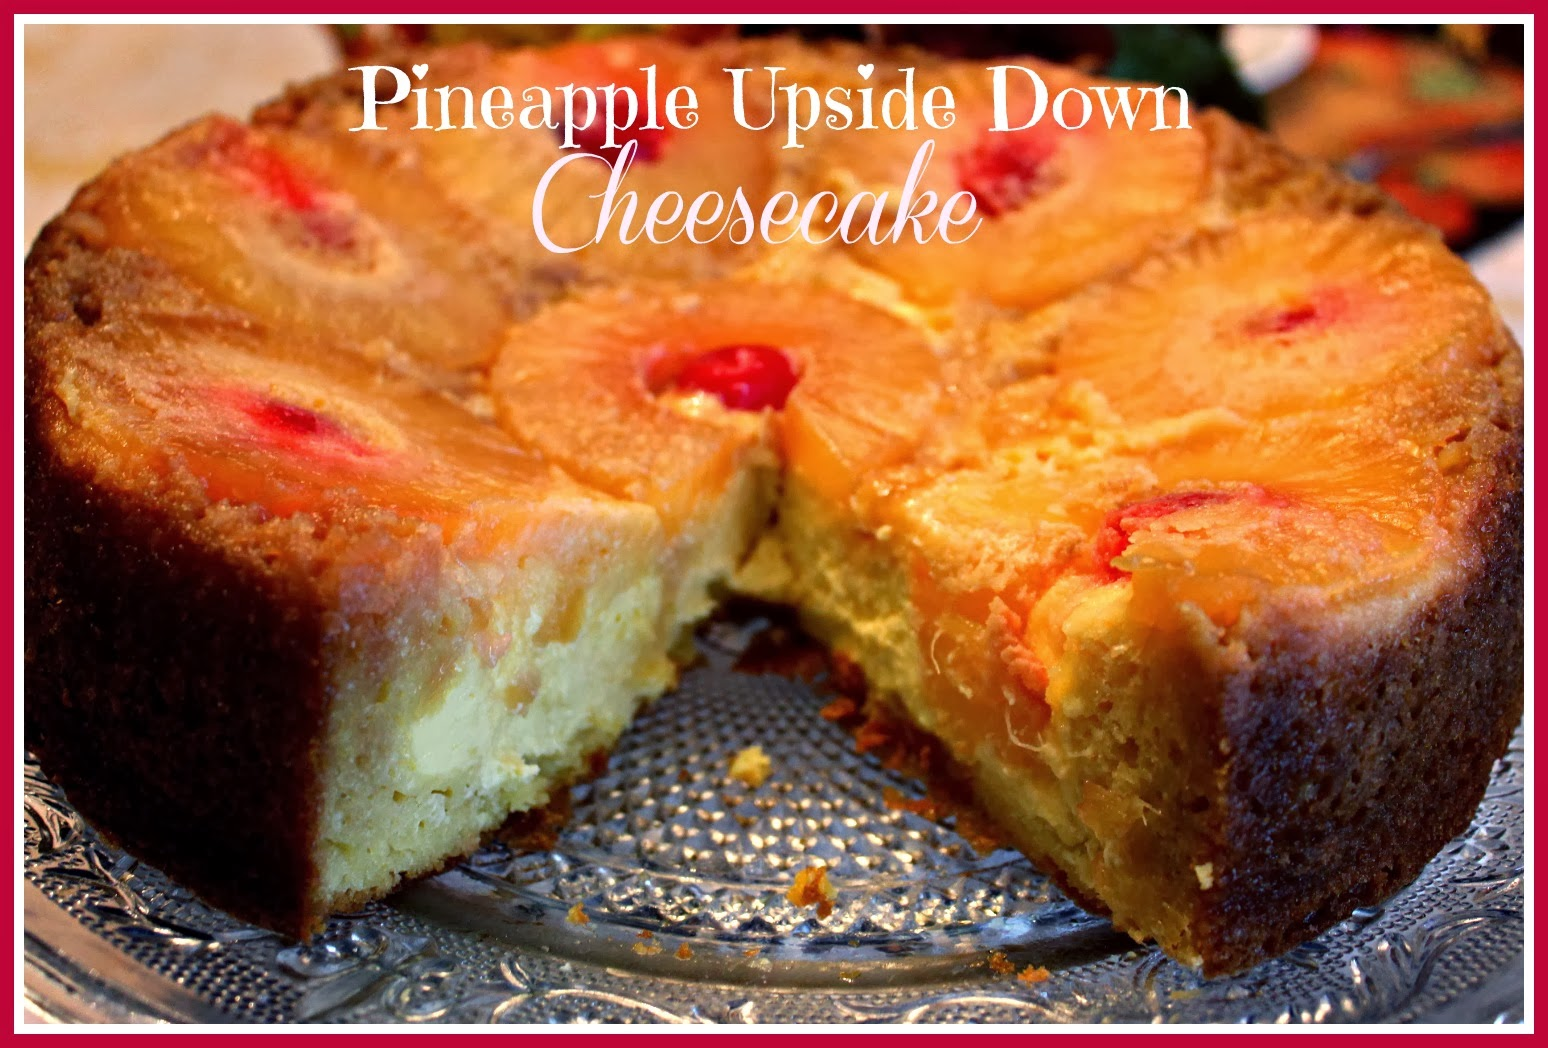 Sweet Tea and Cornbread: Pineapple Upside Down Cheesecake!